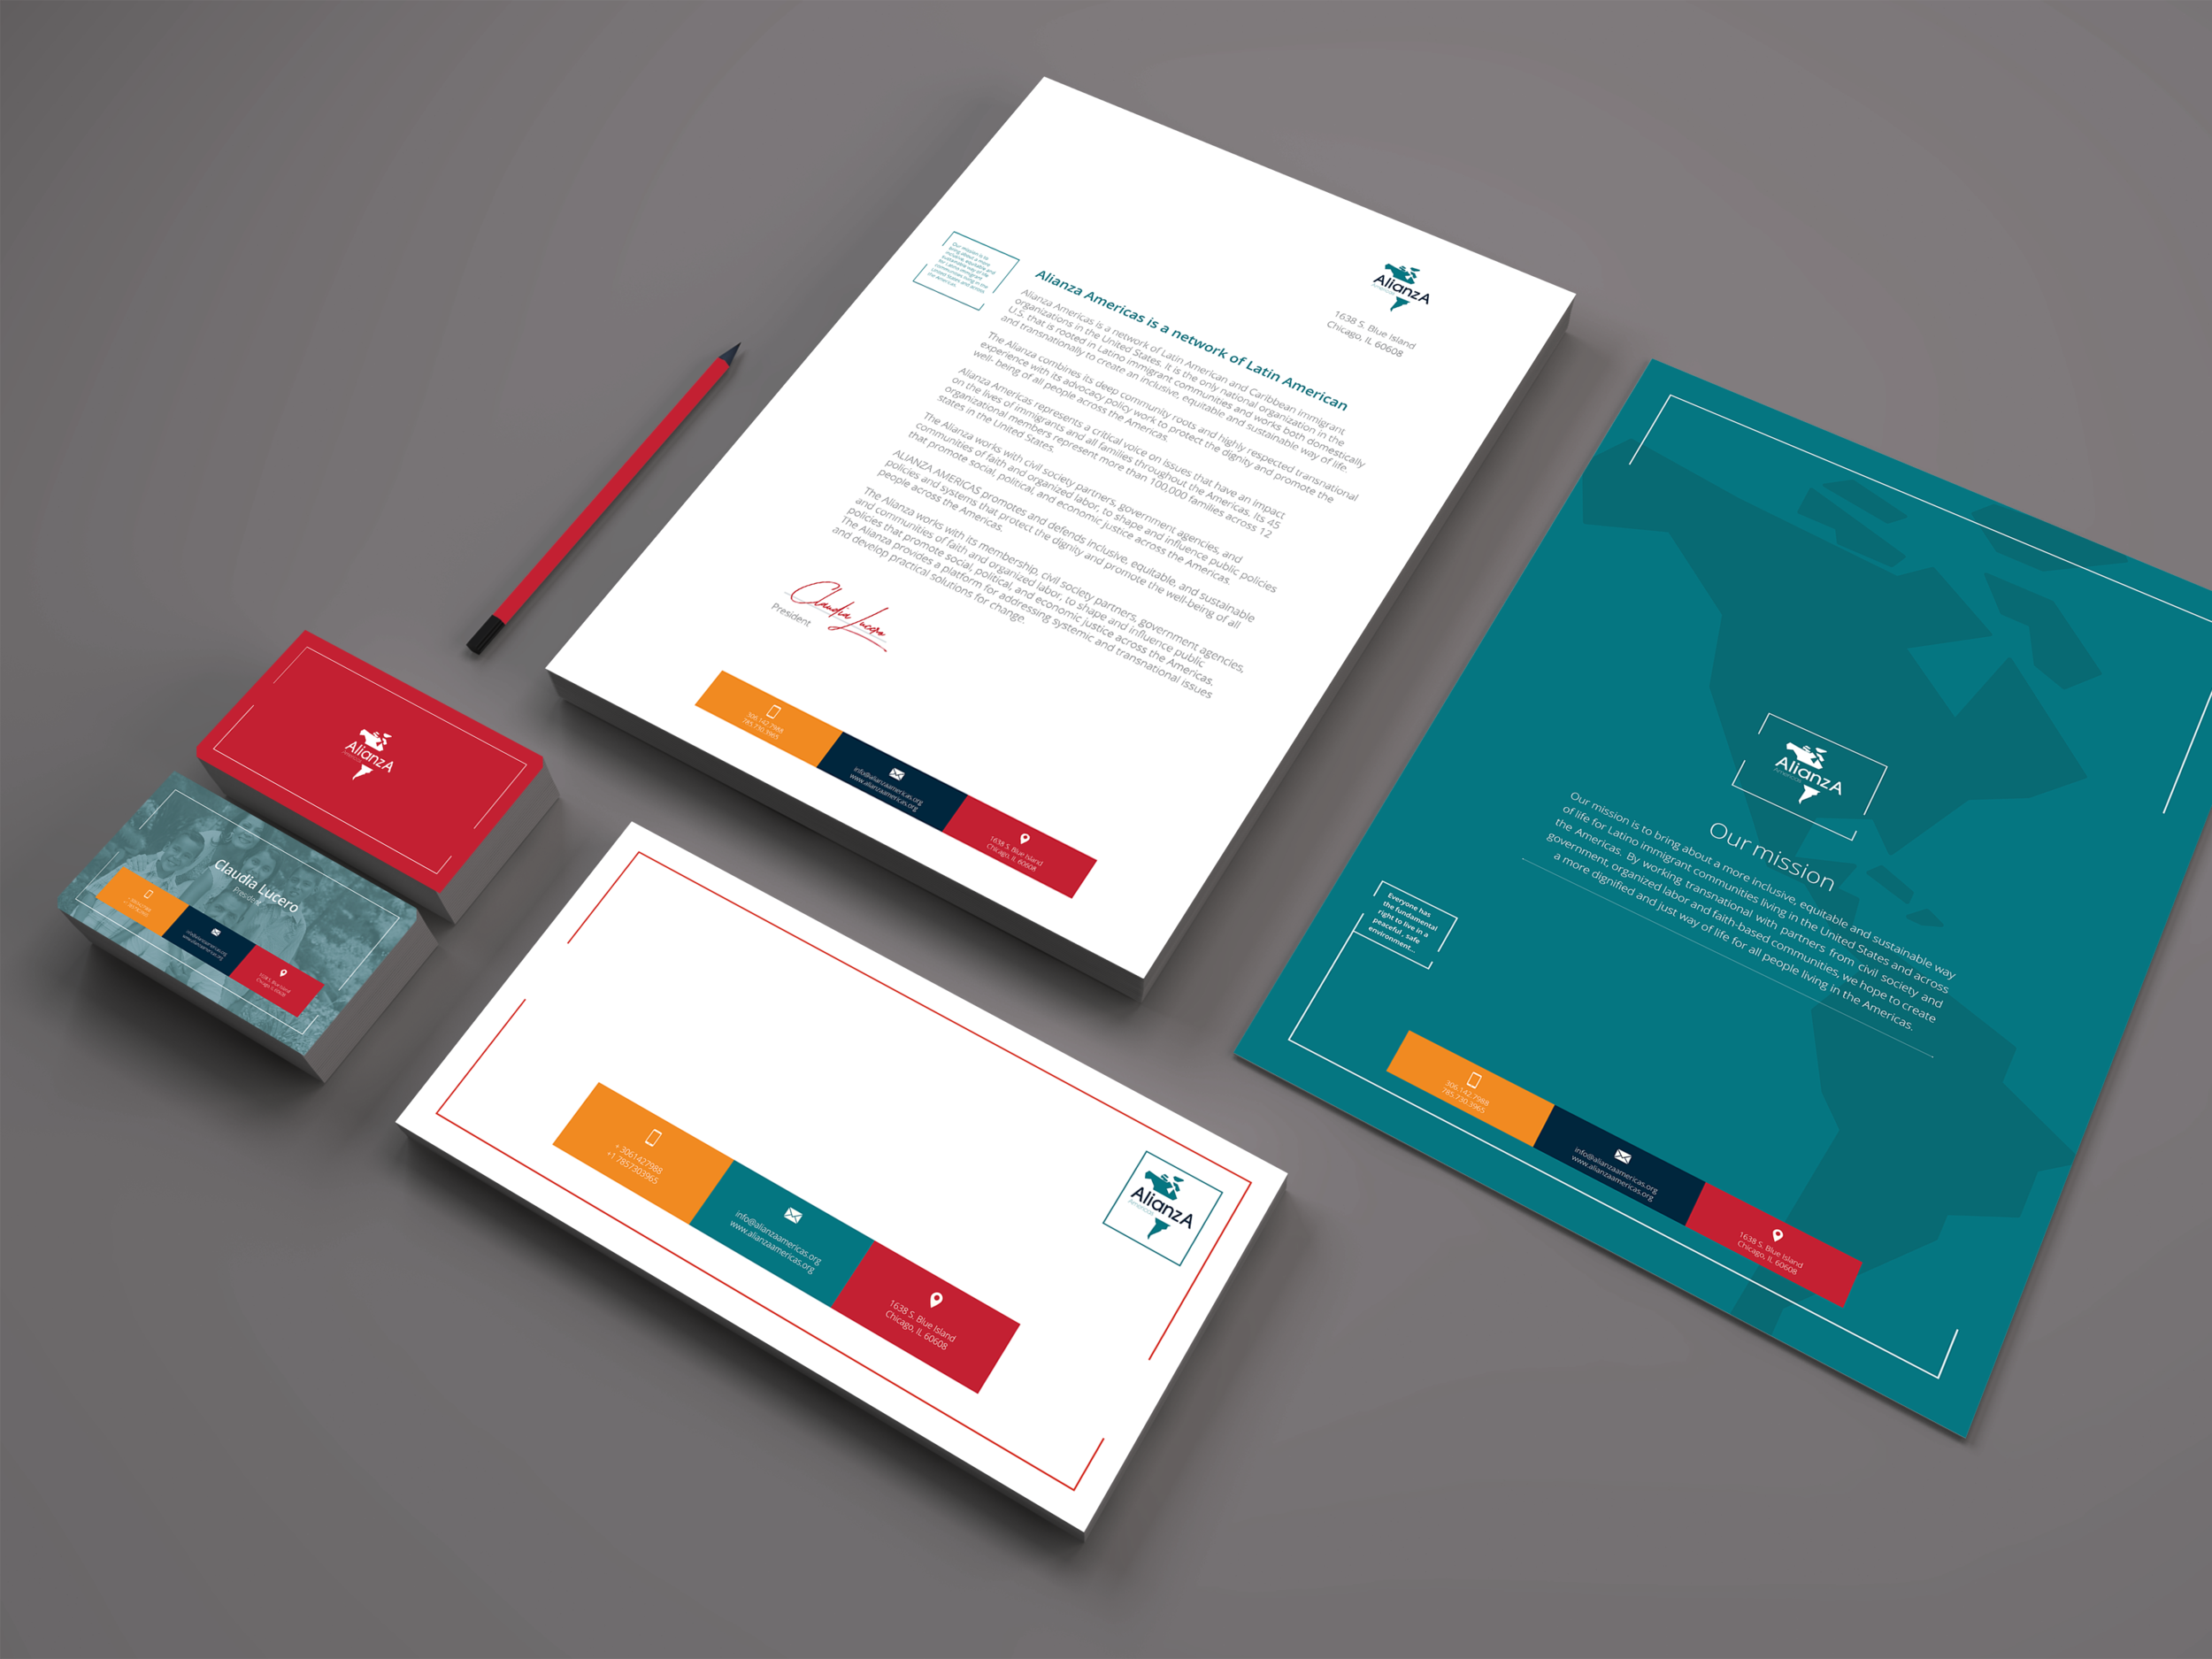 Branding-Stationery-Mockup-Vol.6.png